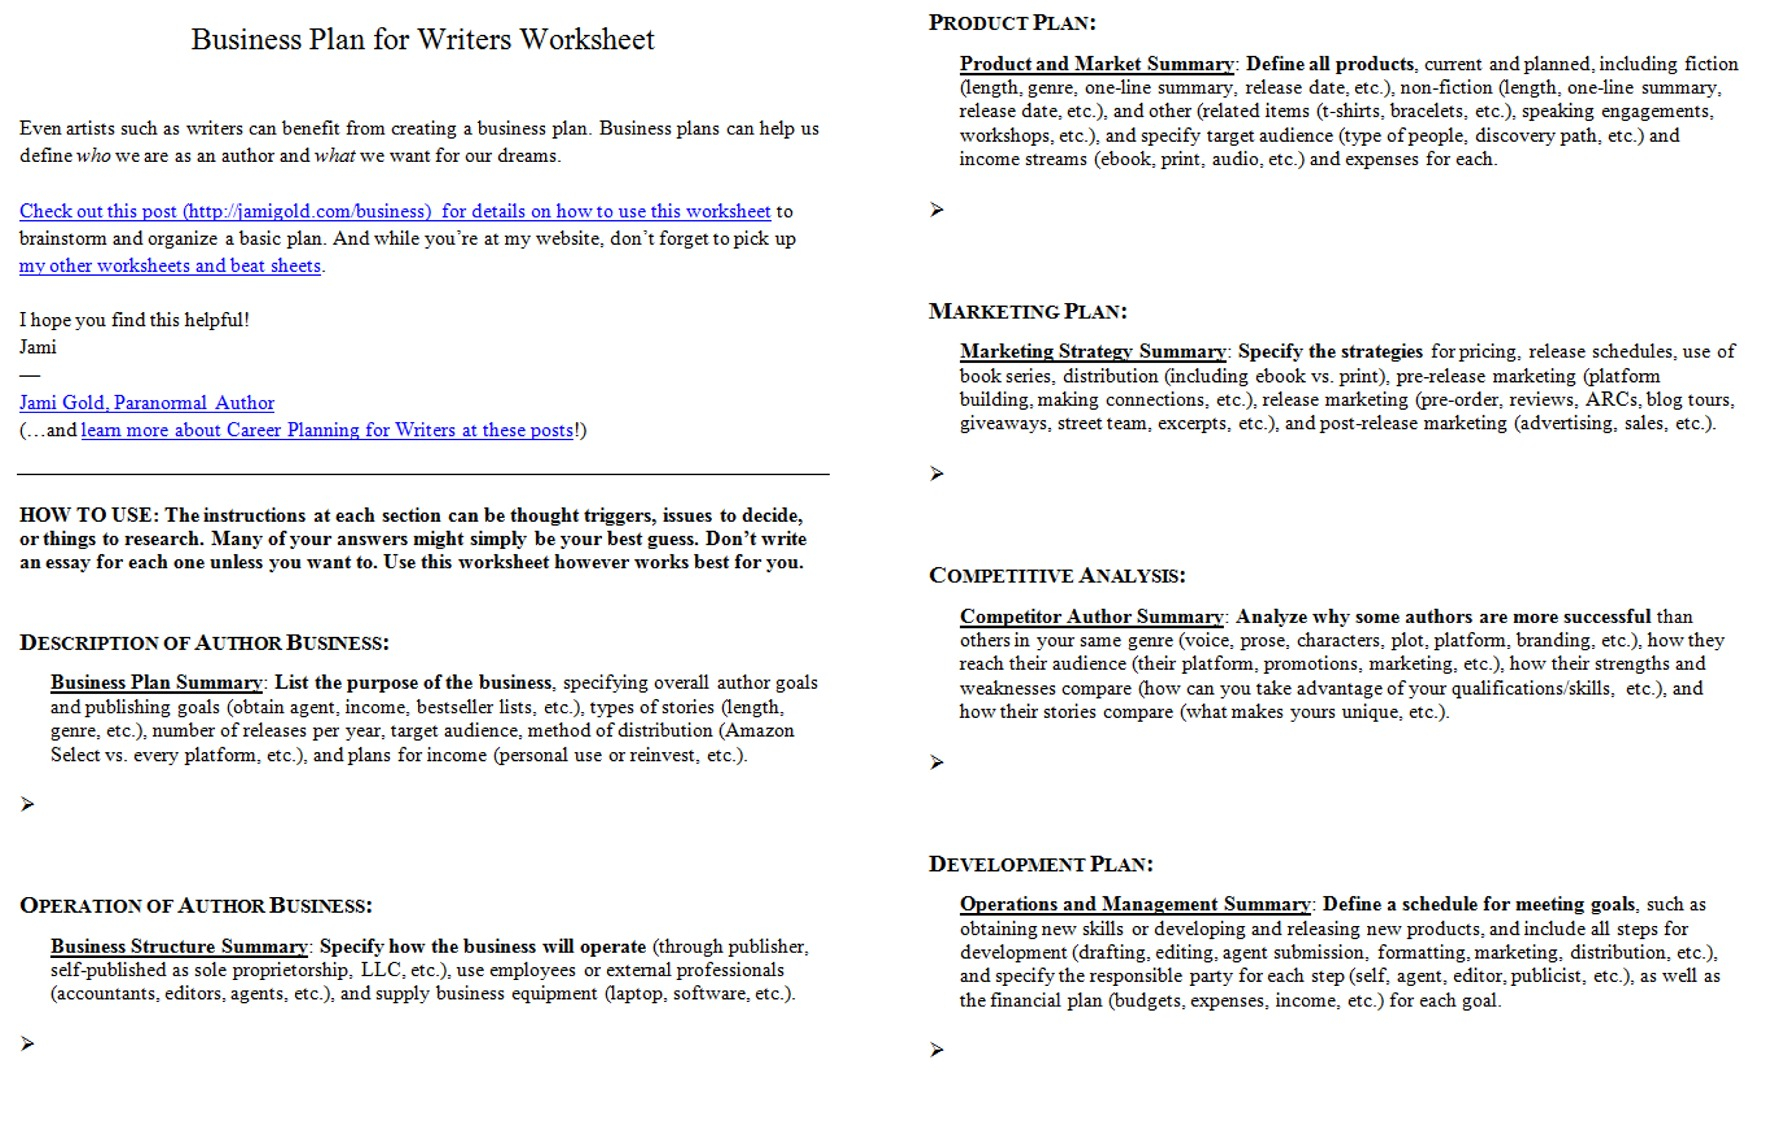 Weirdmailus  Splendid Worksheets For Writers  Jami Gold Paranormal Author With Fetching Screen Shot Of Both Pages Of The Business Plan For Writers Worksheet With Divine Continents And Oceans Worksheets Also Metaphor And Simile Worksheets In Addition Fun Worksheets For Nd Grade And Center Worksheet Excel As Well As Exponents And Scientific Notation Worksheets Additionally Dividing Fractions And Mixed Numbers Worksheet From Jamigoldcom With Weirdmailus  Fetching Worksheets For Writers  Jami Gold Paranormal Author With Divine Screen Shot Of Both Pages Of The Business Plan For Writers Worksheet And Splendid Continents And Oceans Worksheets Also Metaphor And Simile Worksheets In Addition Fun Worksheets For Nd Grade From Jamigoldcom